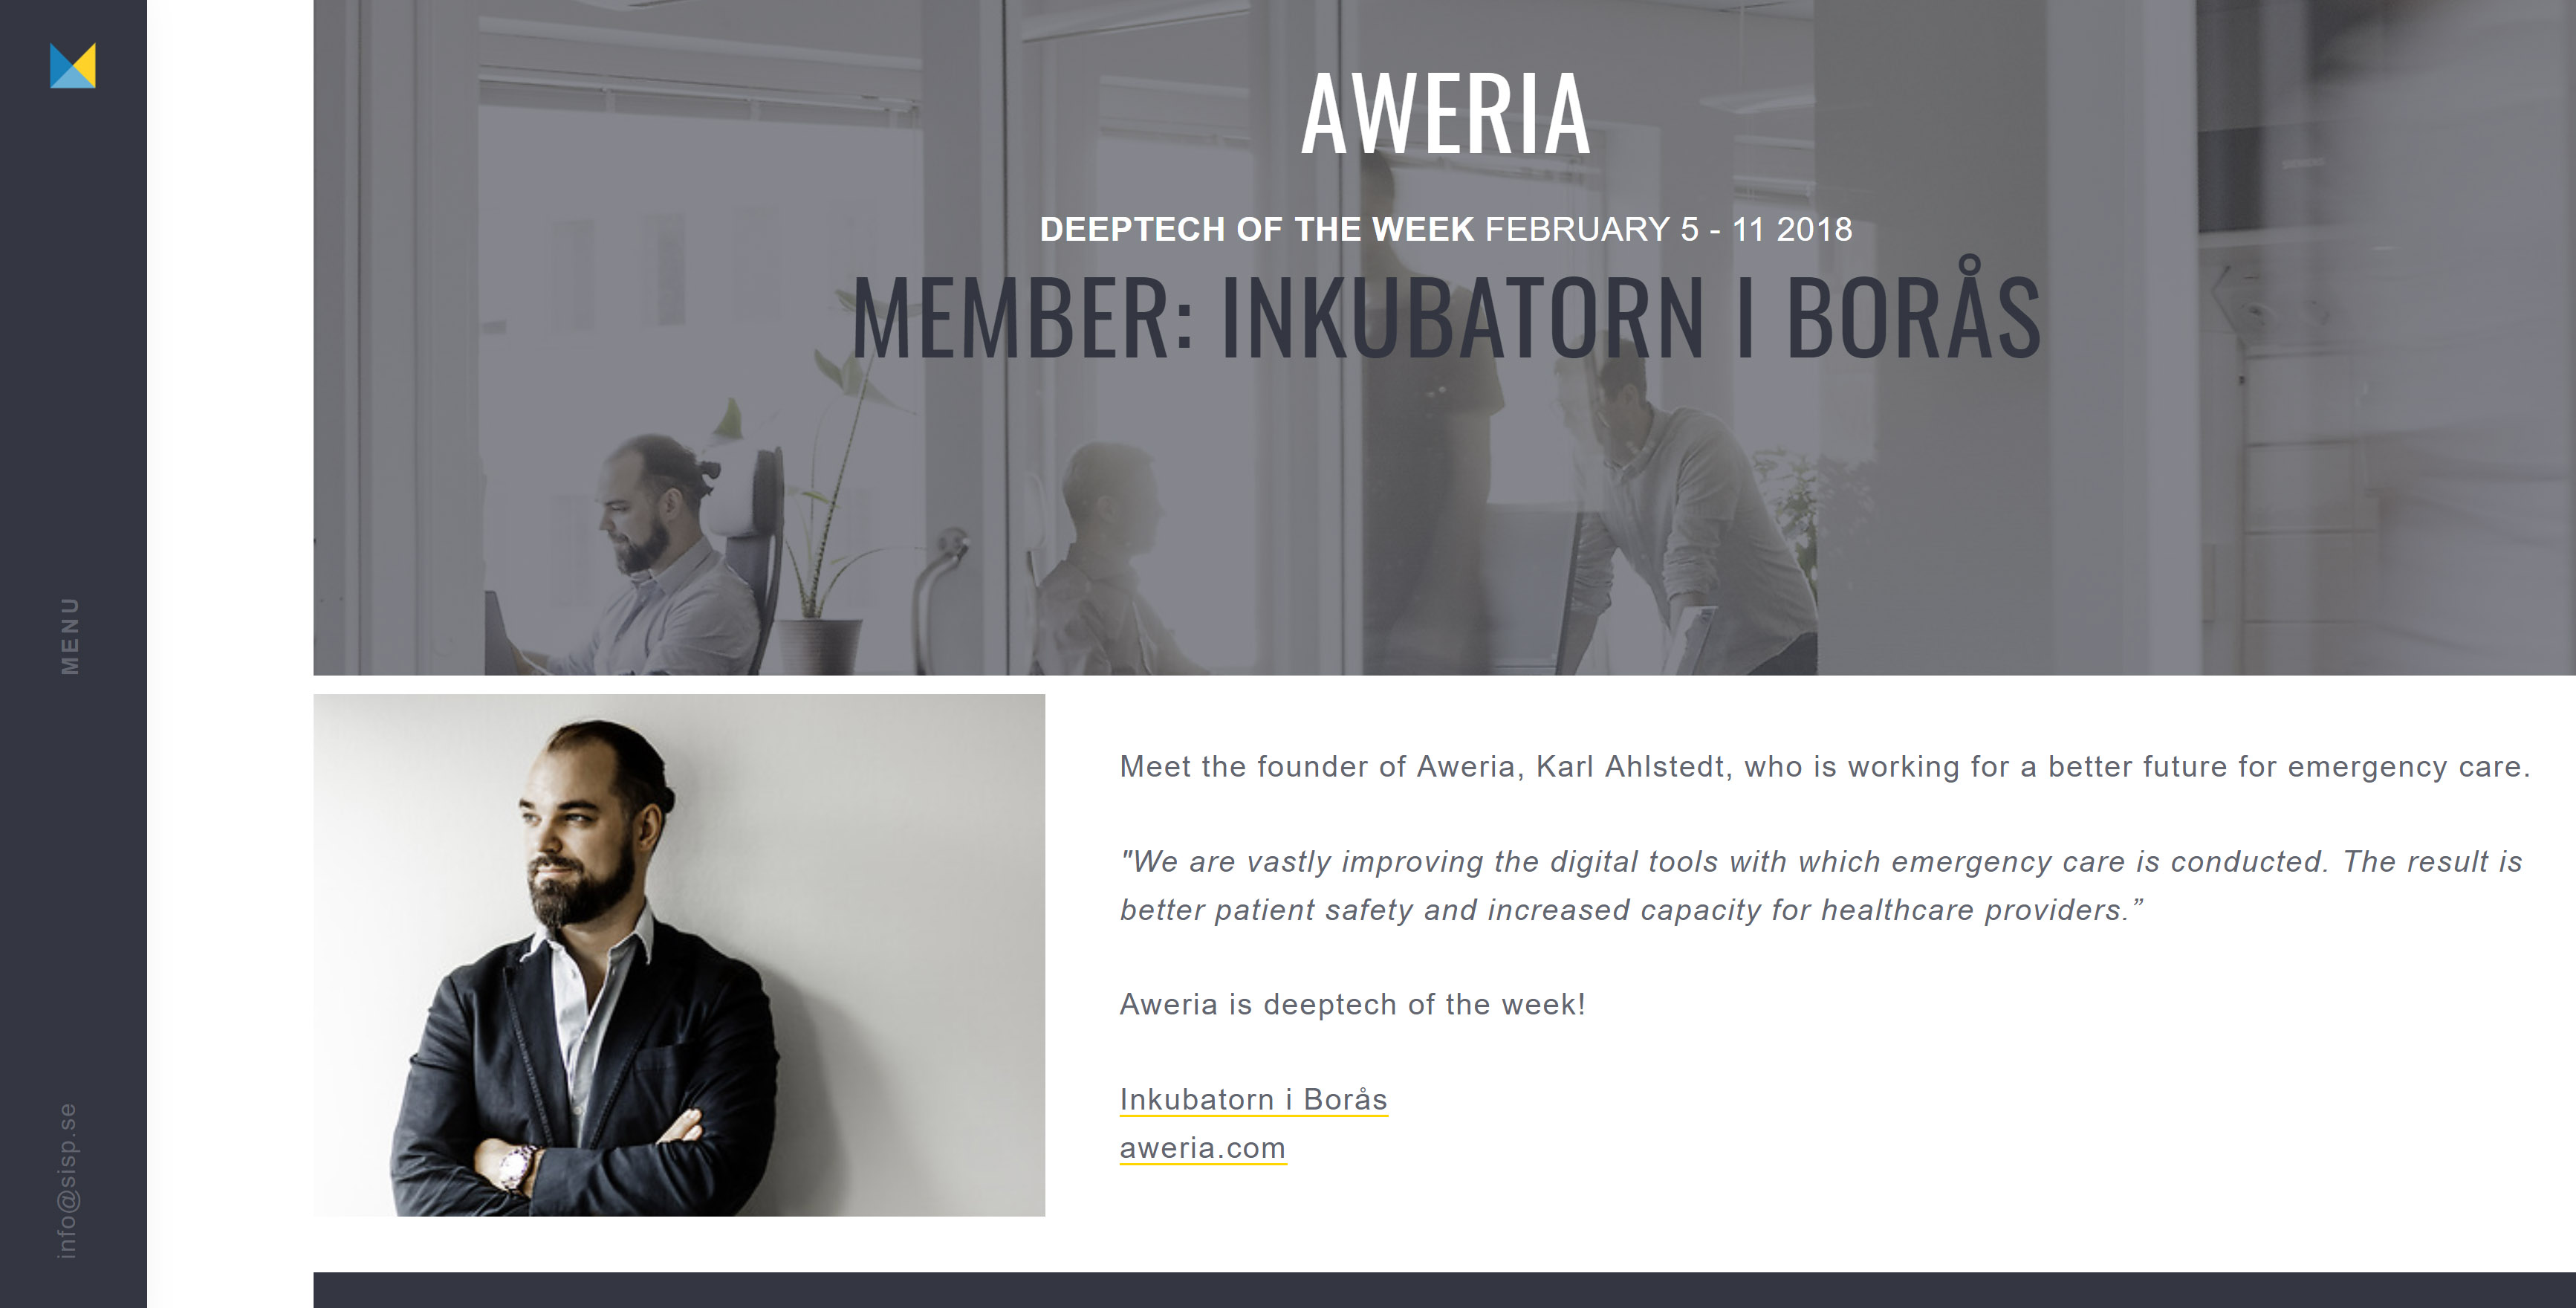 Aweria is Deeptech of the week - Aweria